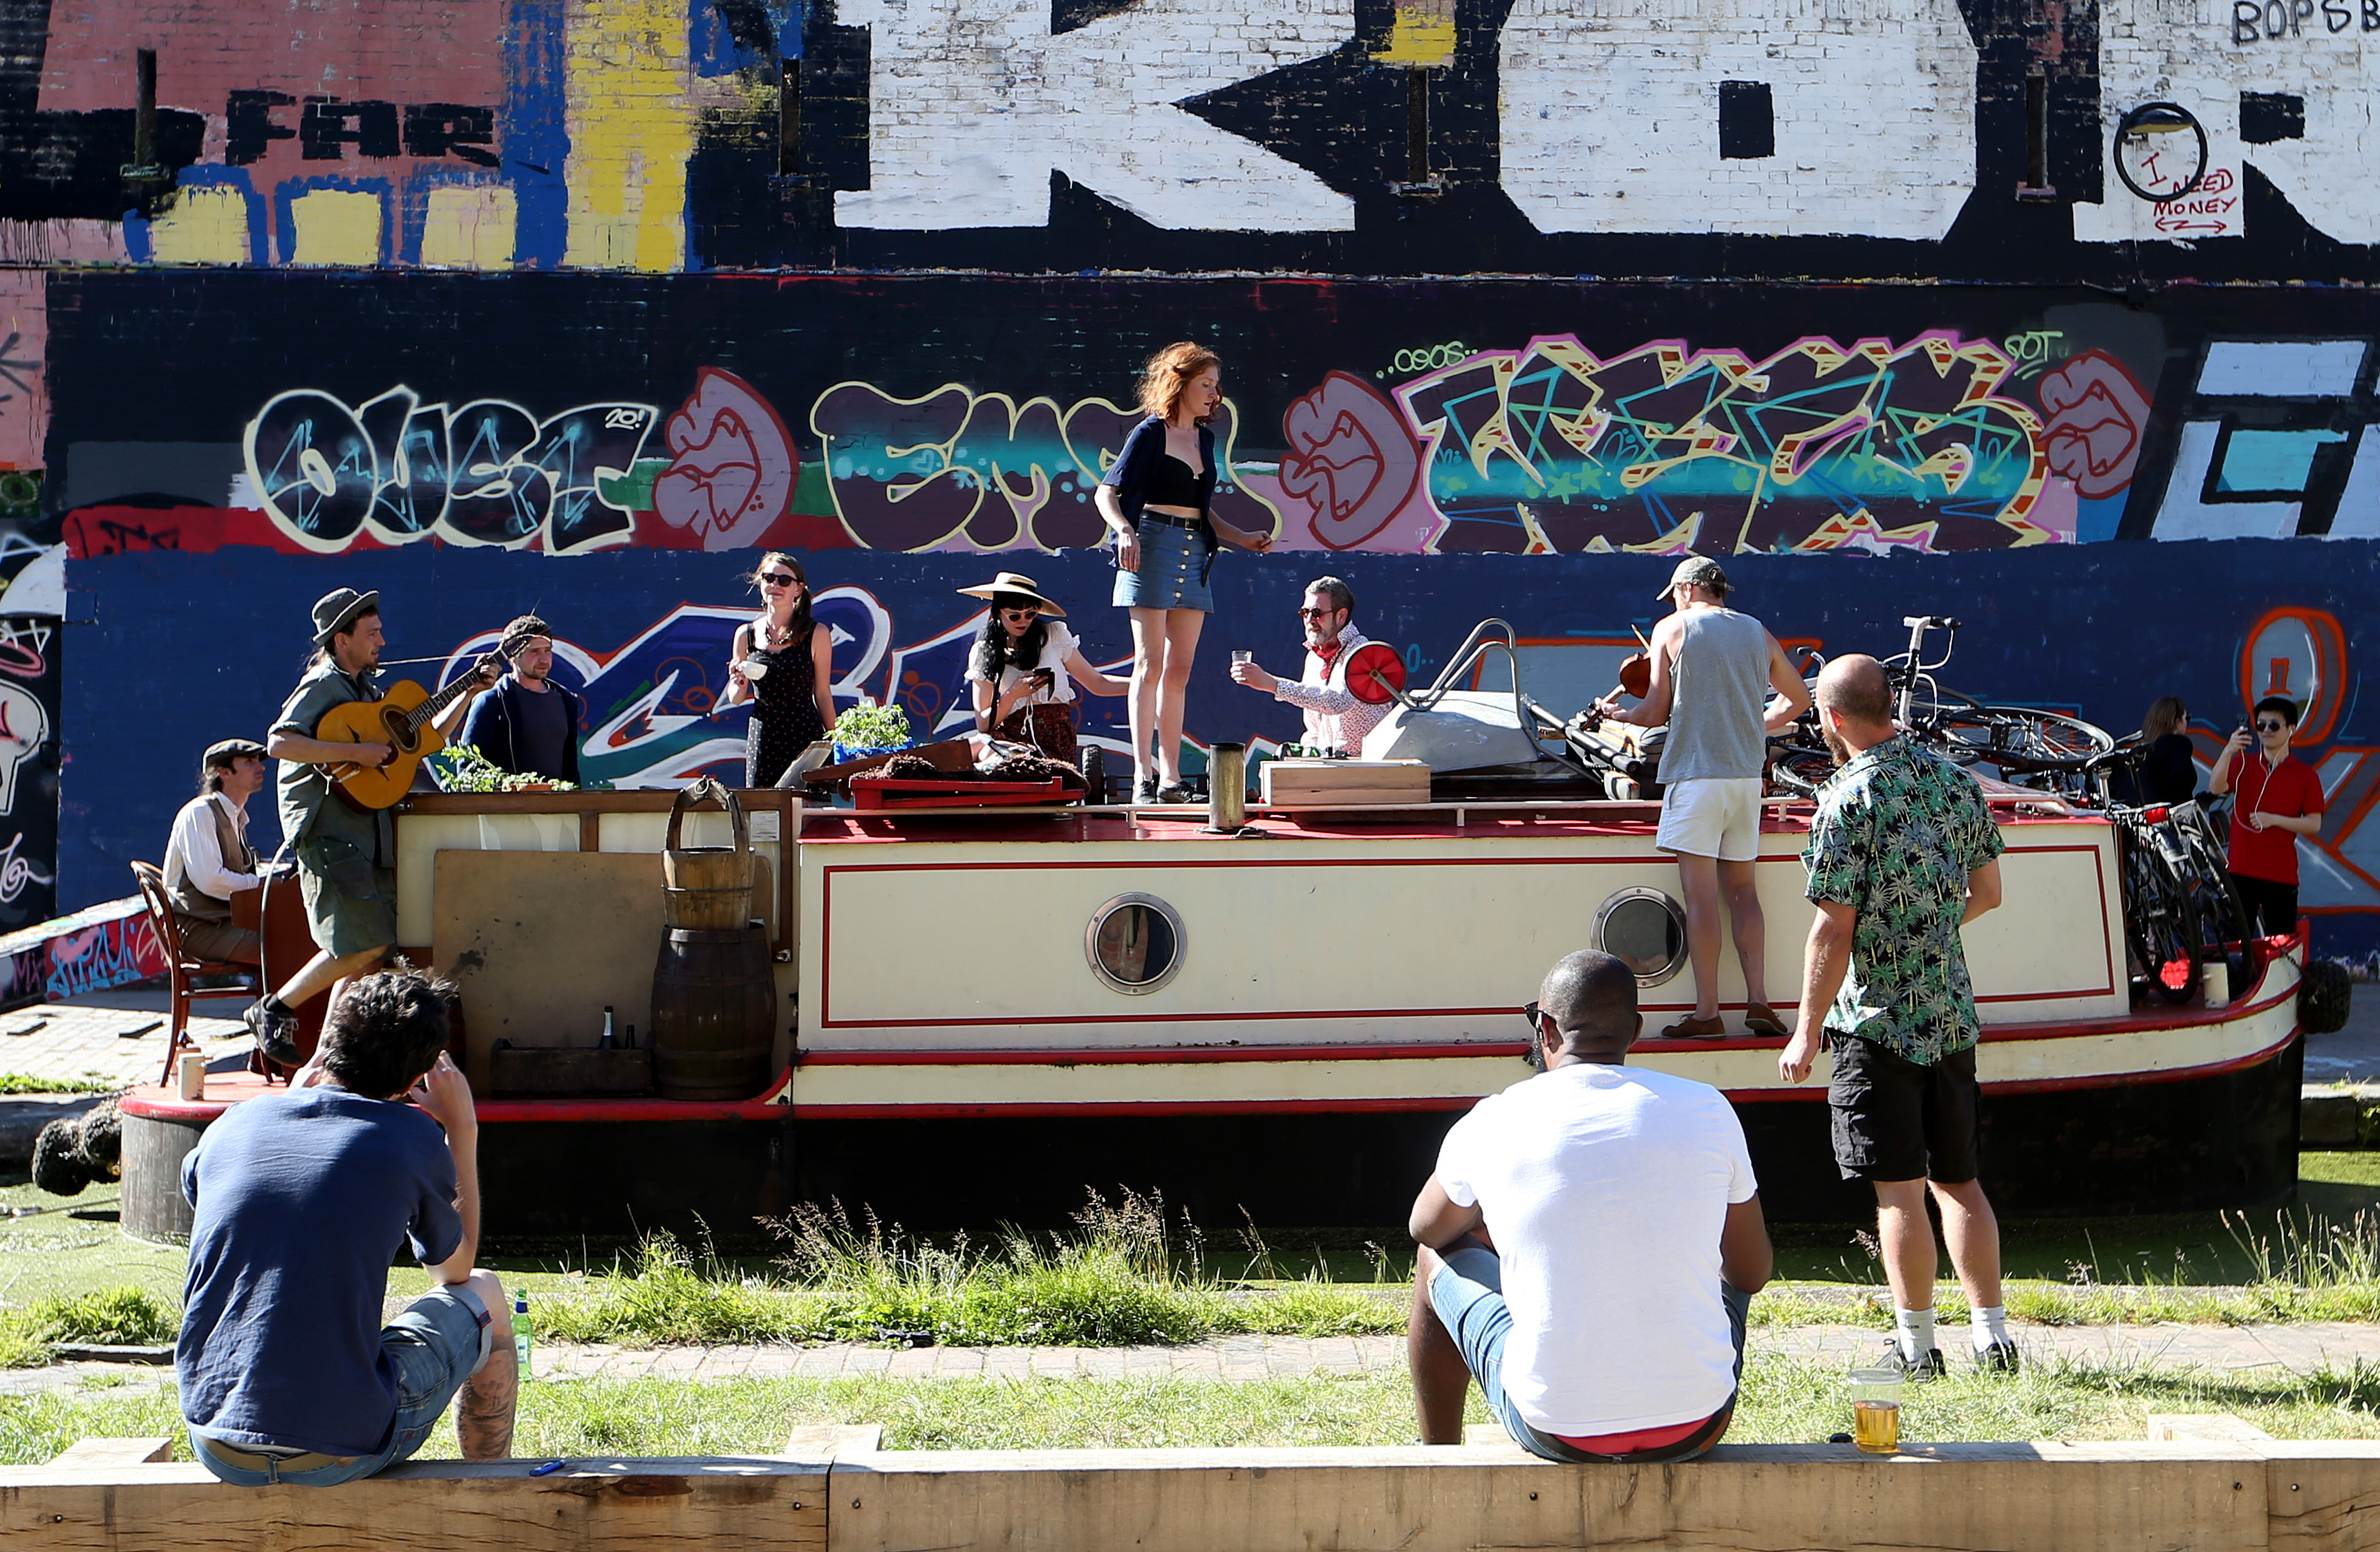 LONDON, ENGLAND  - MAY 31: A band play musical instruments on a canal boat in Hackney Wick on May 31, 2020 in London, England. The British government continues to ease the coronavirus lockdown by announcing schools will open to reception year pupils plus years one and six from June 1st. Open-air markets and car showrooms can also open from the same date.  (Photo by Alex Pantling/Getty Images)